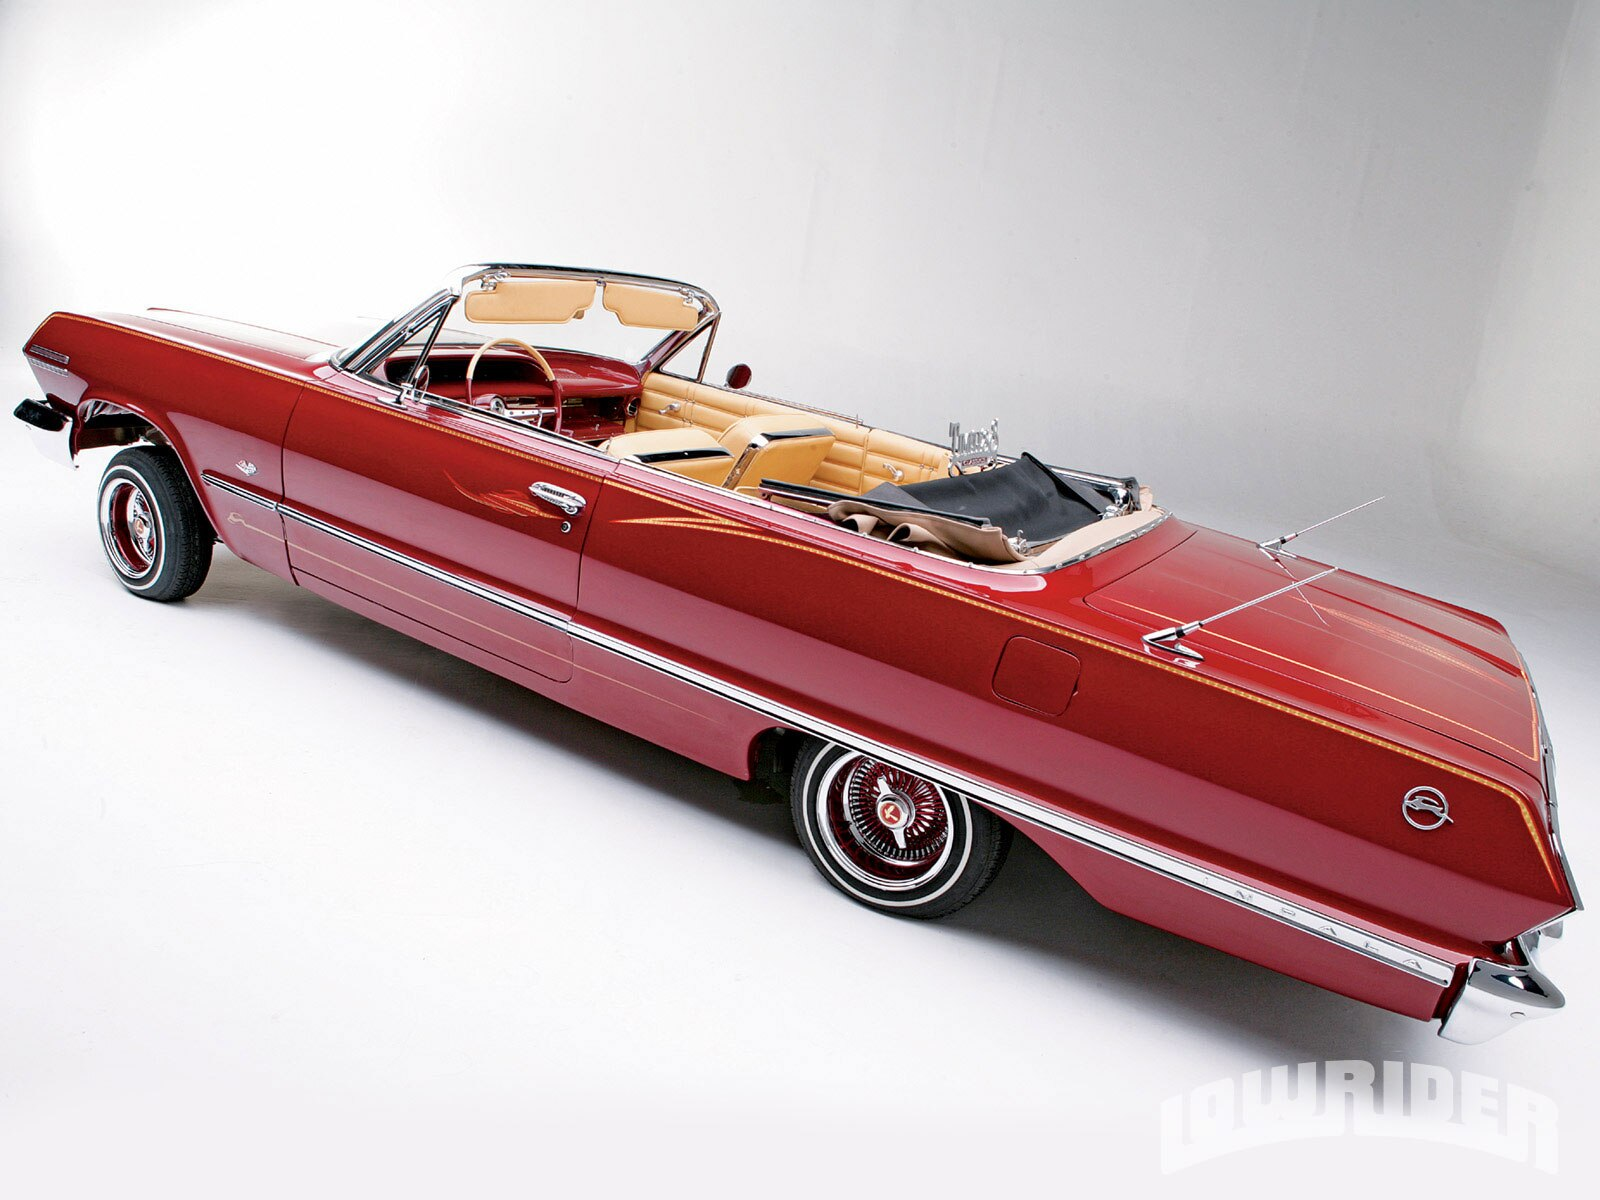 0911-lrmp-05-o-1963-chevy-impala-convertible-top-down1